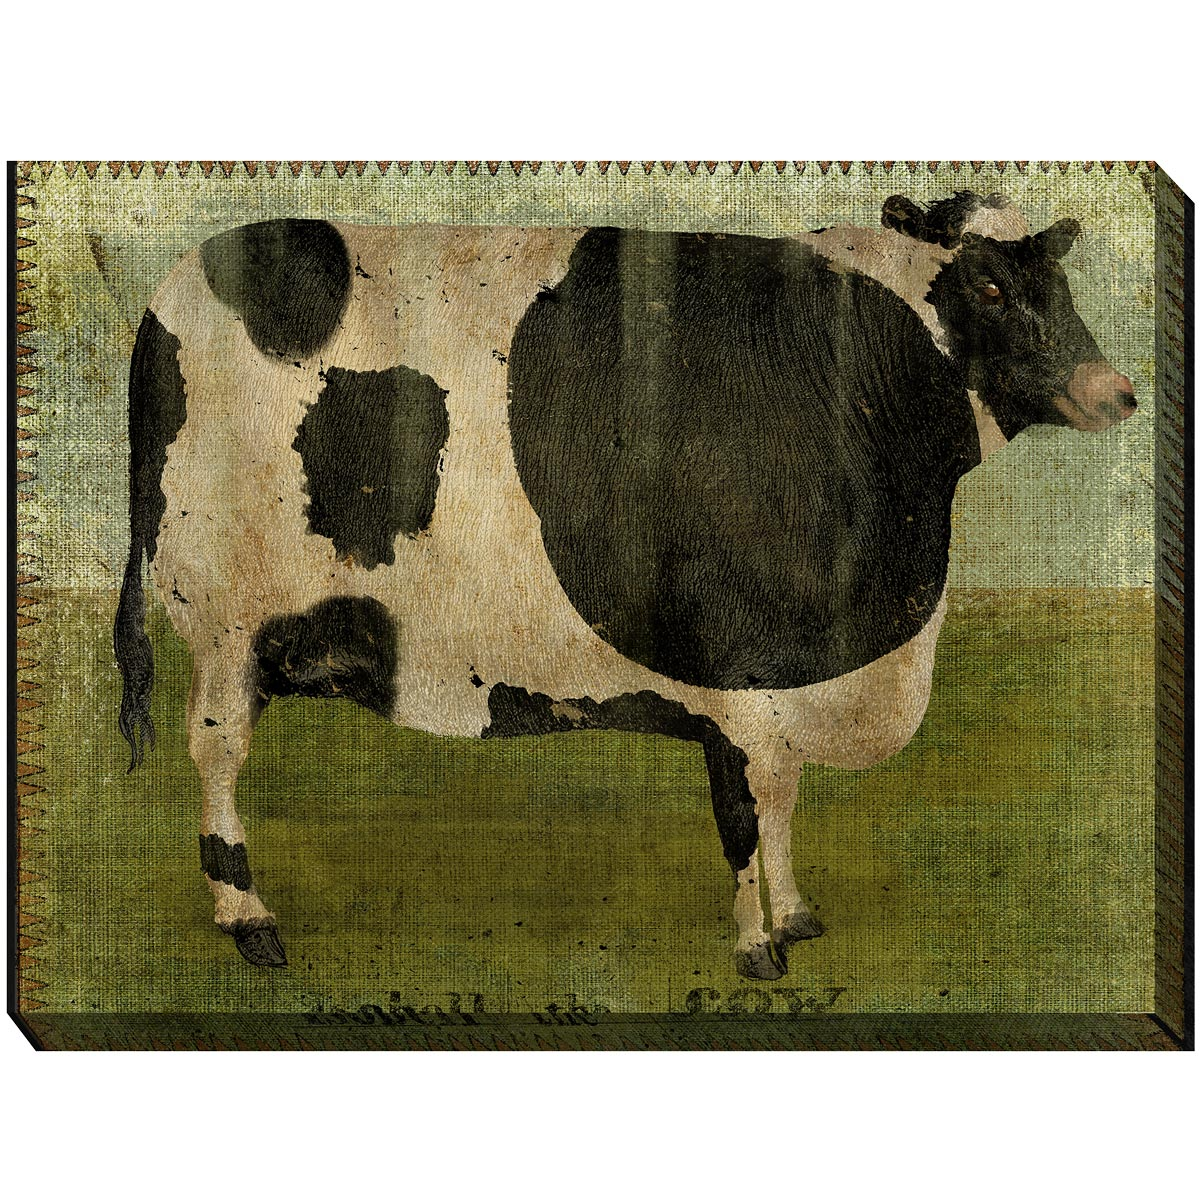 Flossie the Cow Canvas Art